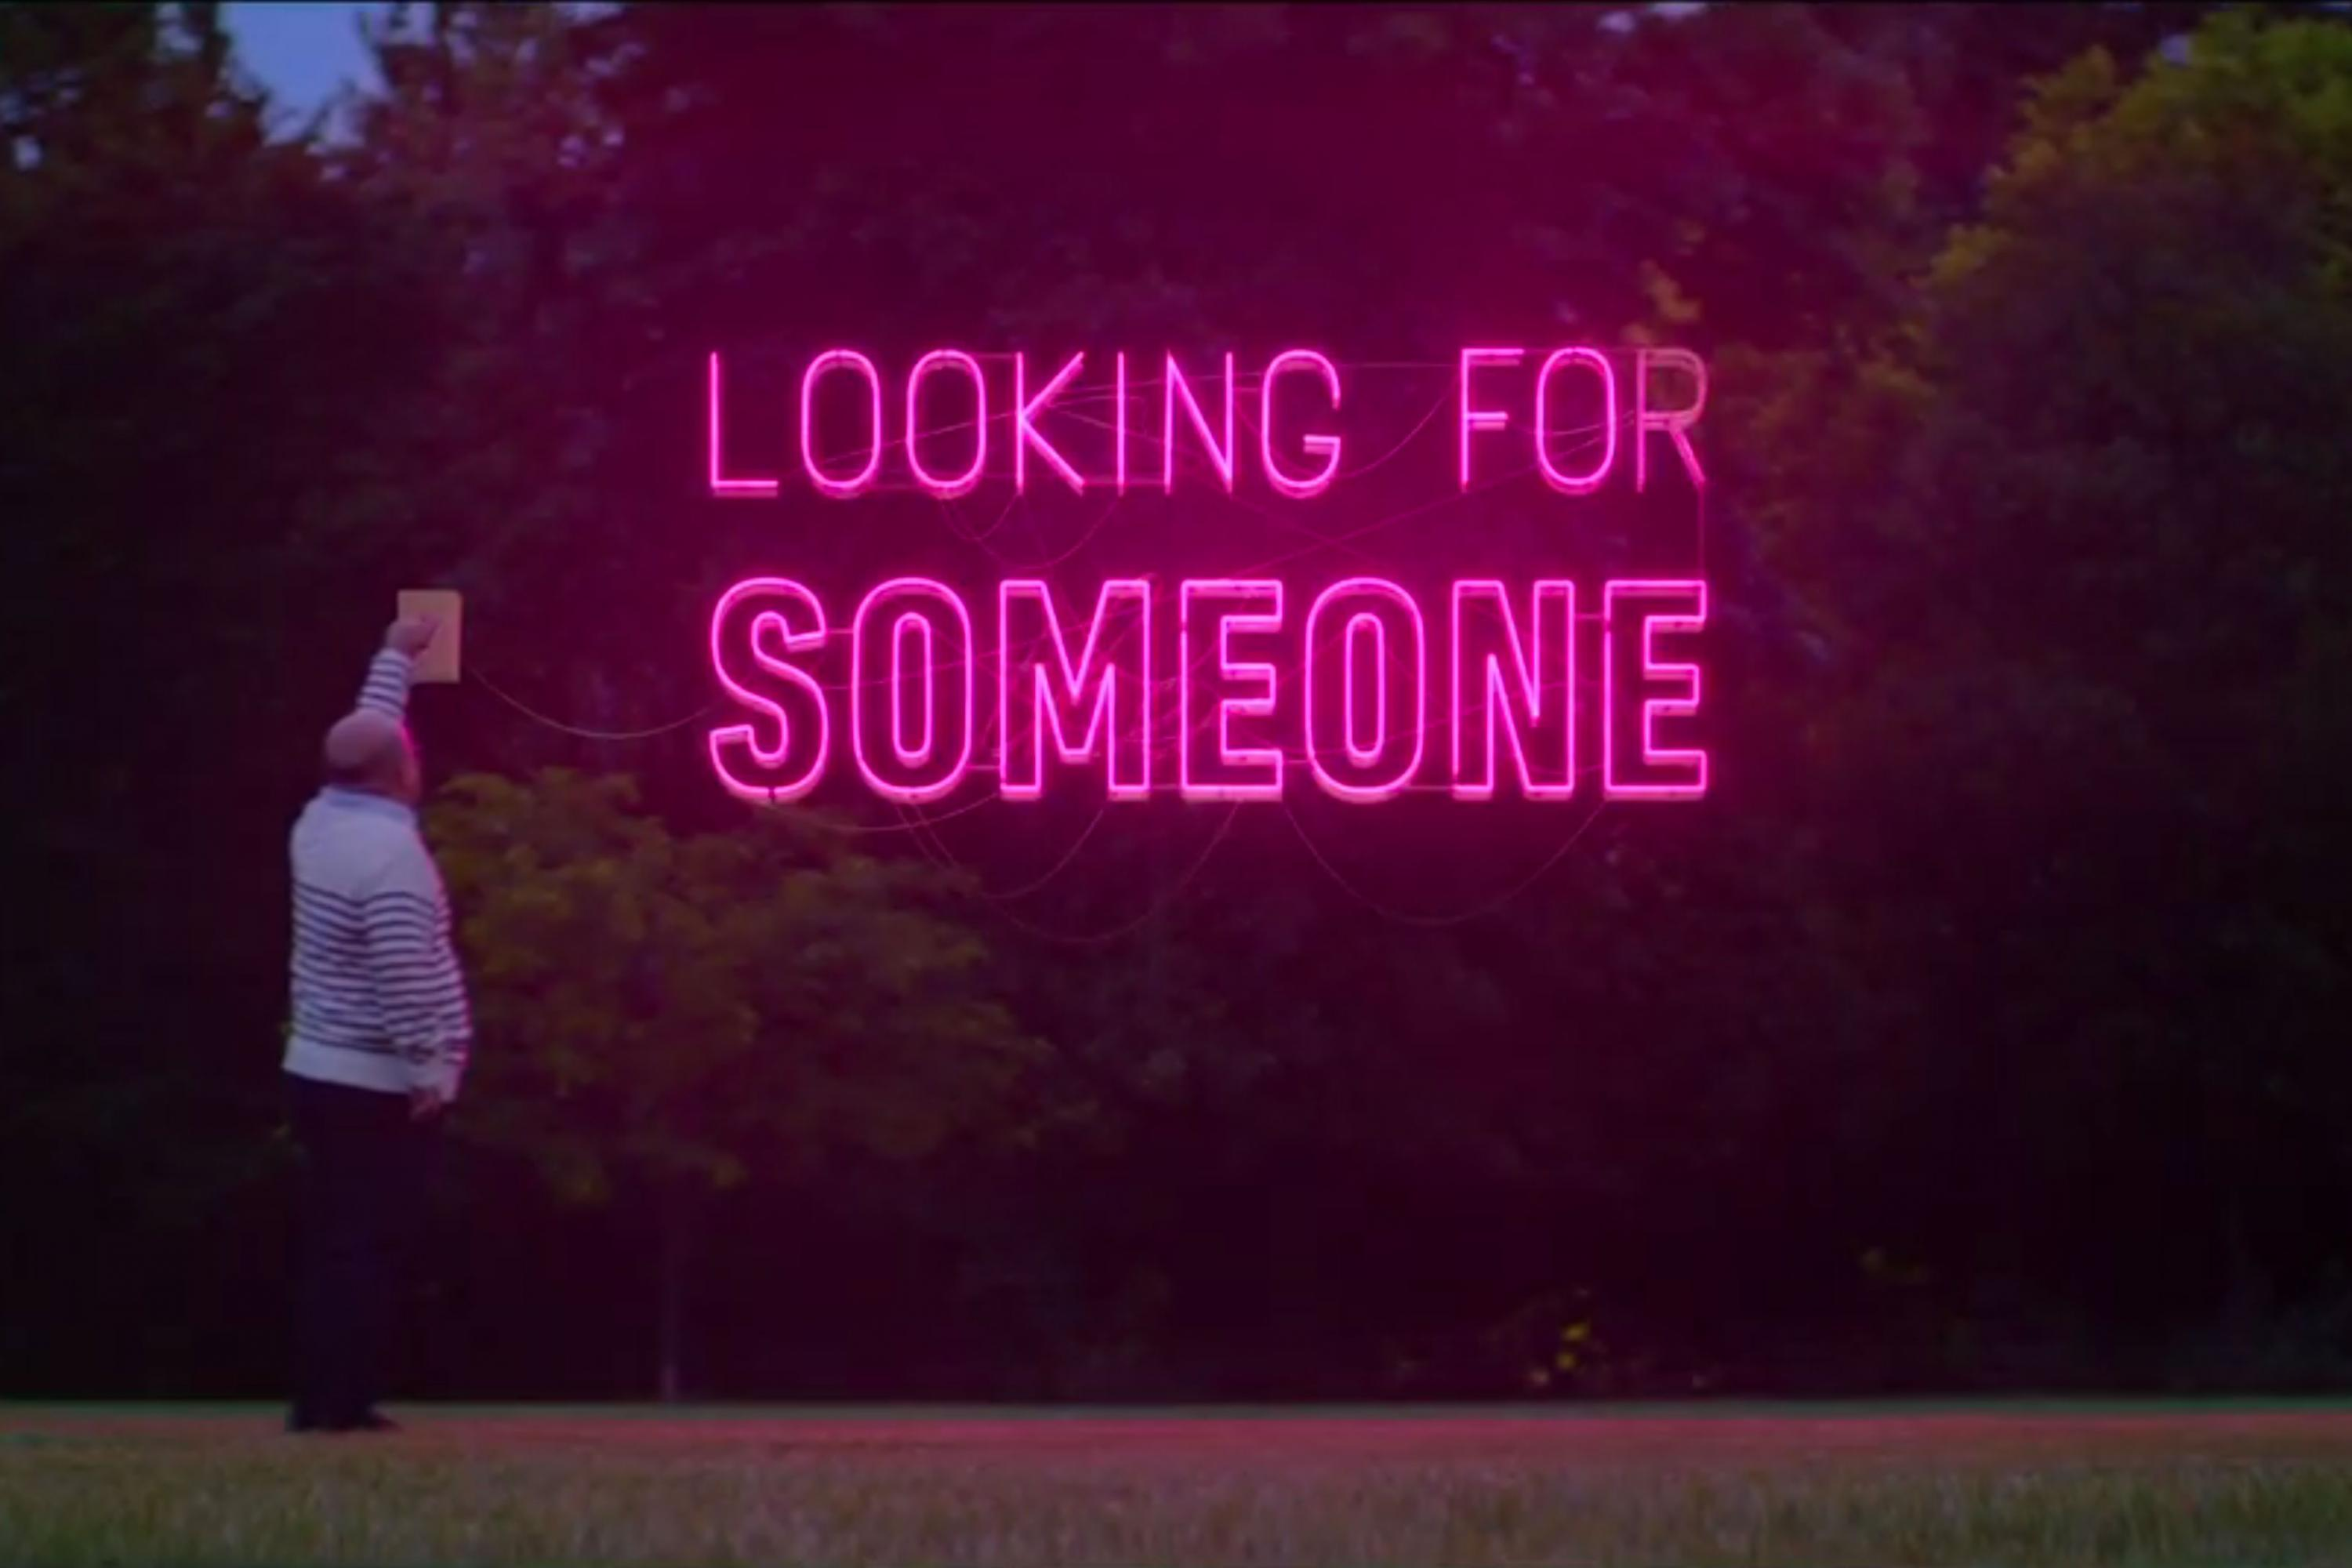 This lonely man's personal ad was turned into three short films to help him find love